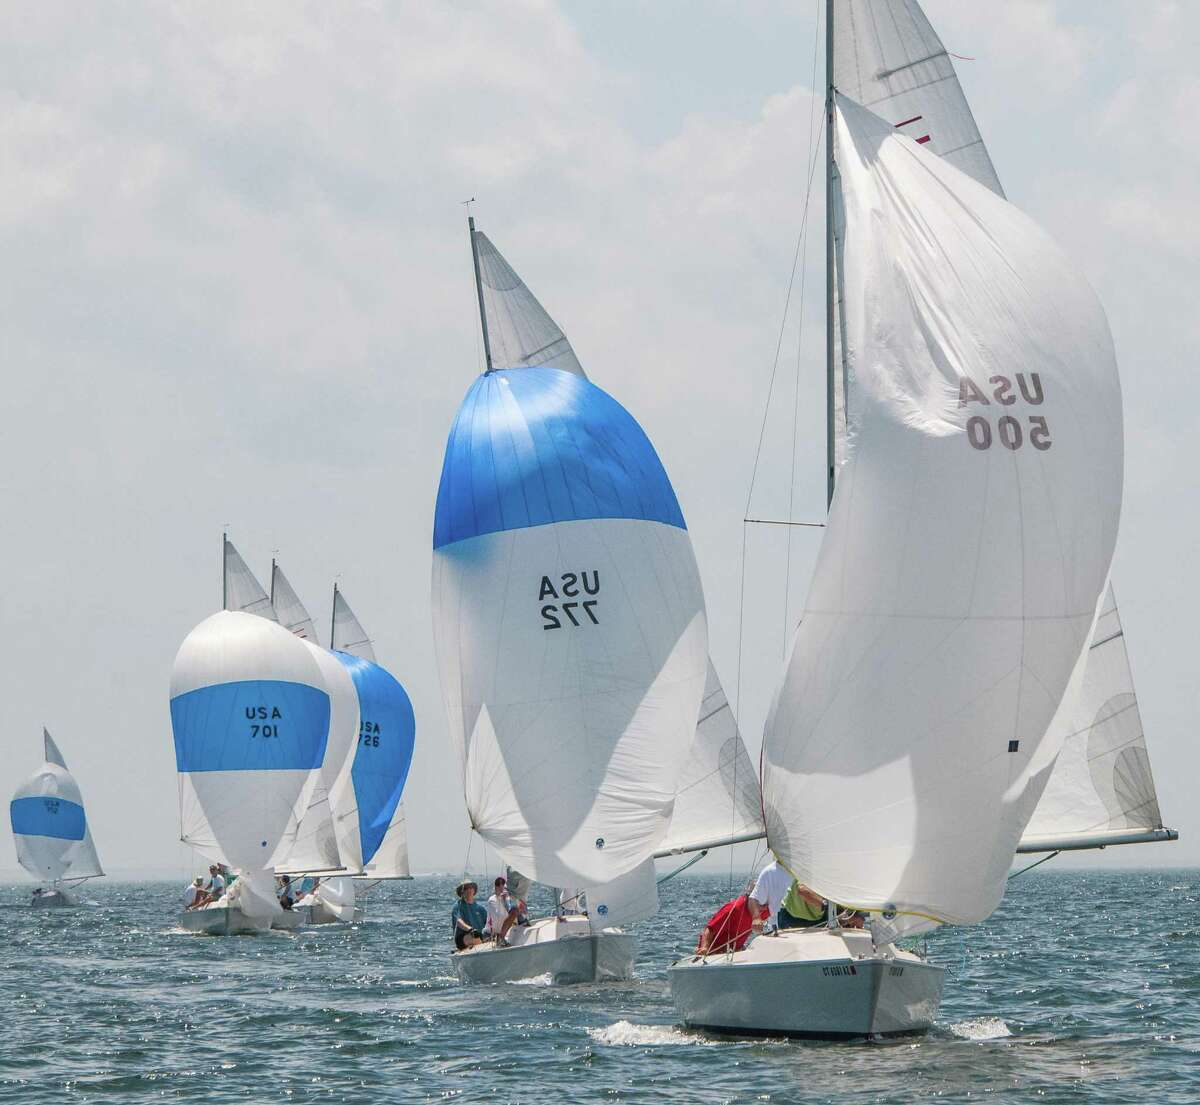 The Noroton Yacht Club recently concluded its season.